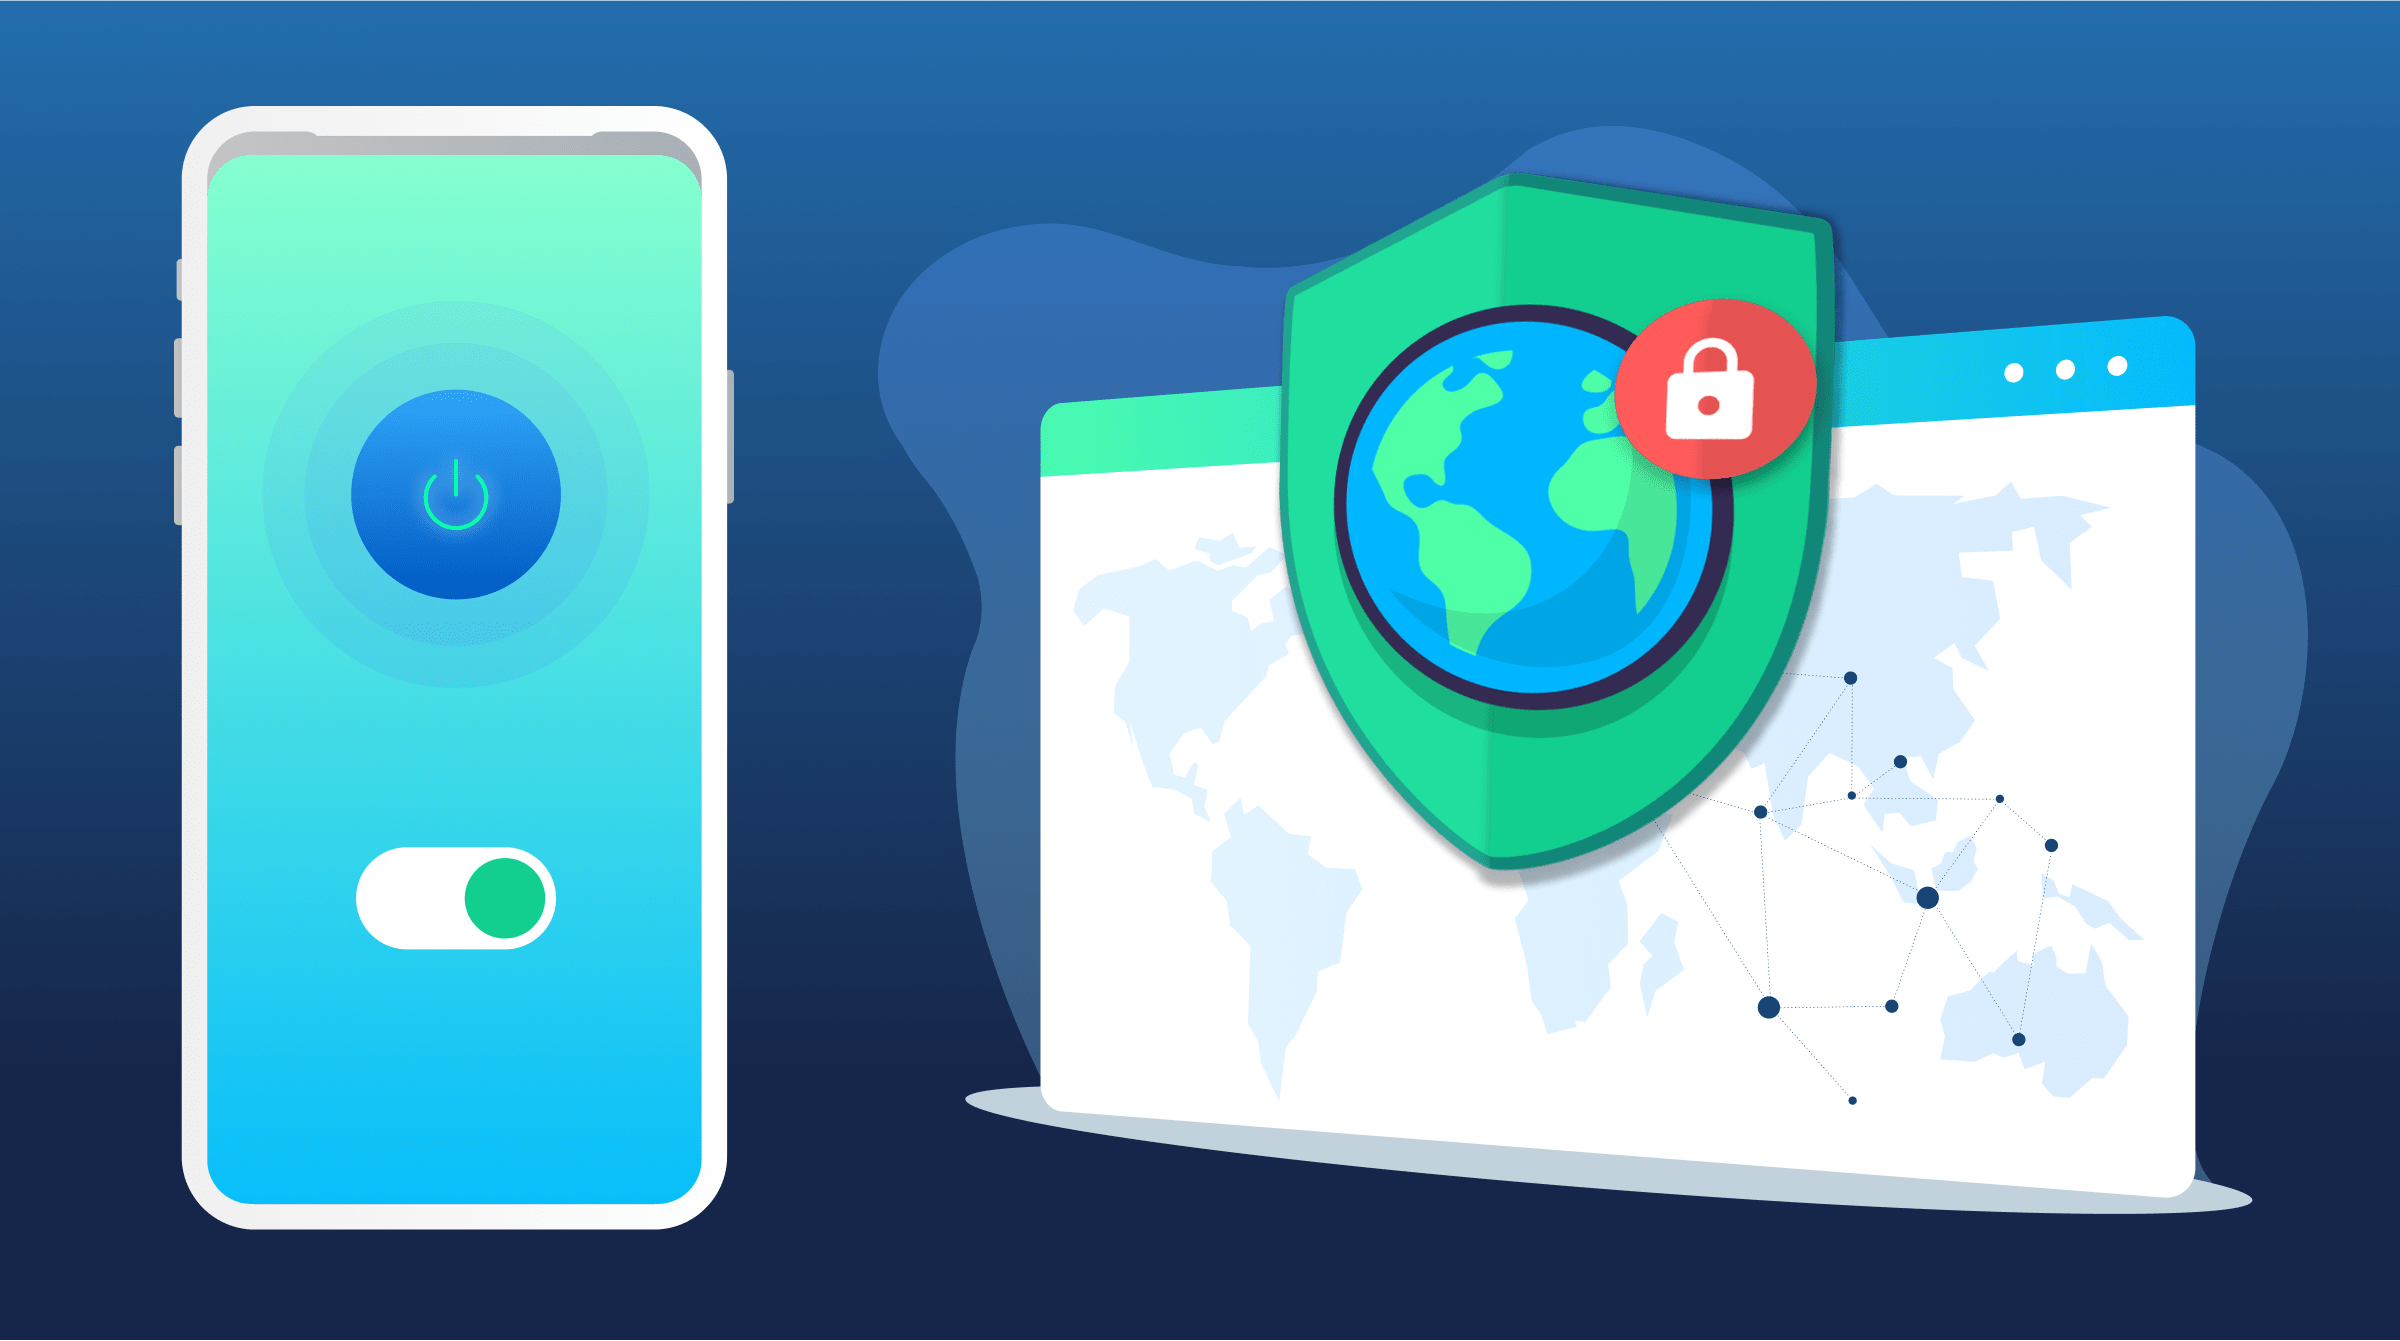 Situations When You Should Enable VPN